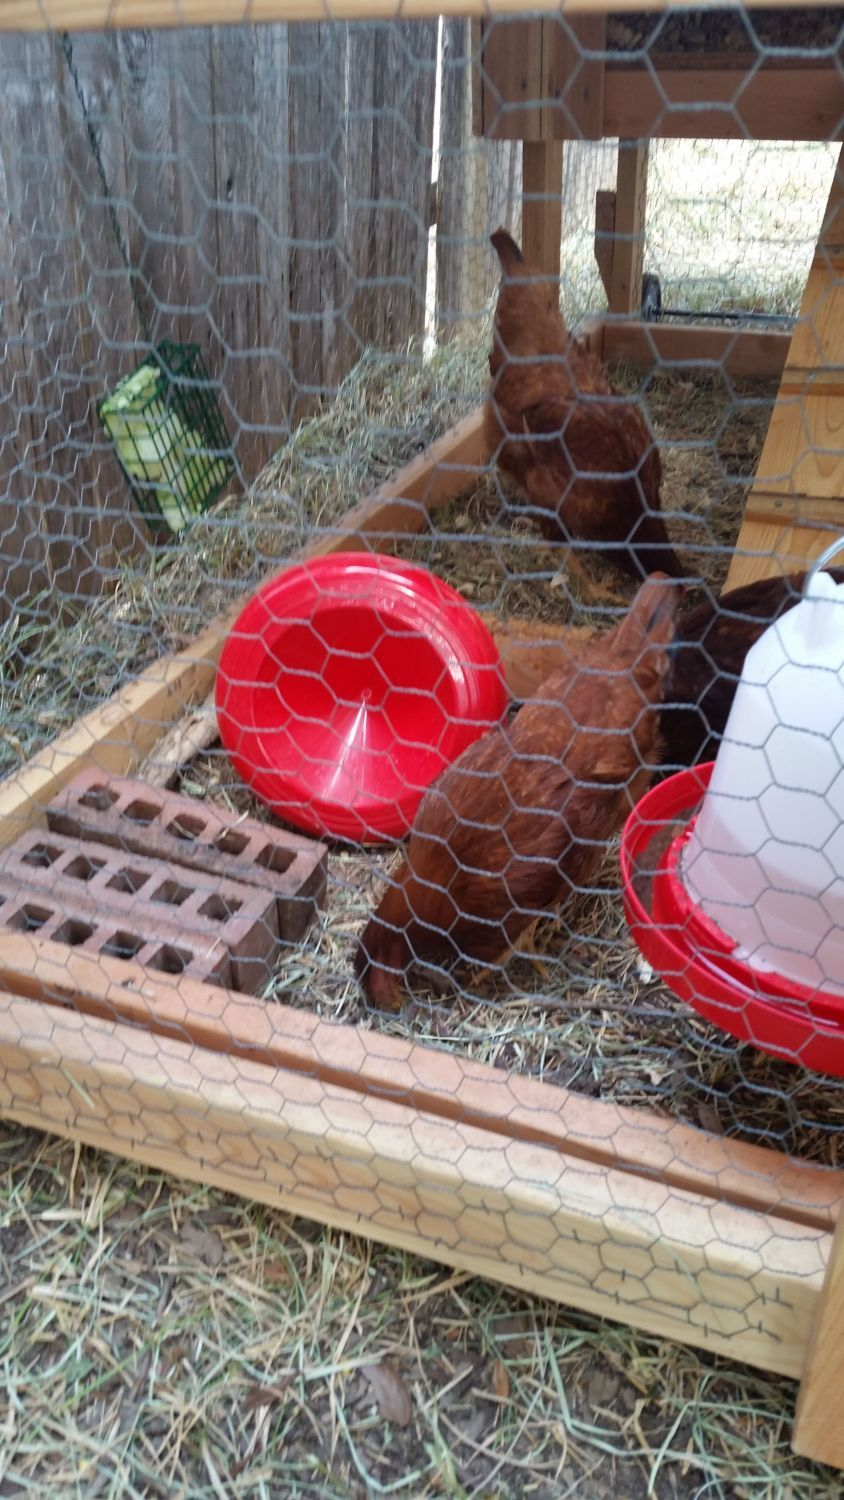 rhode island red or production red backyard chickens